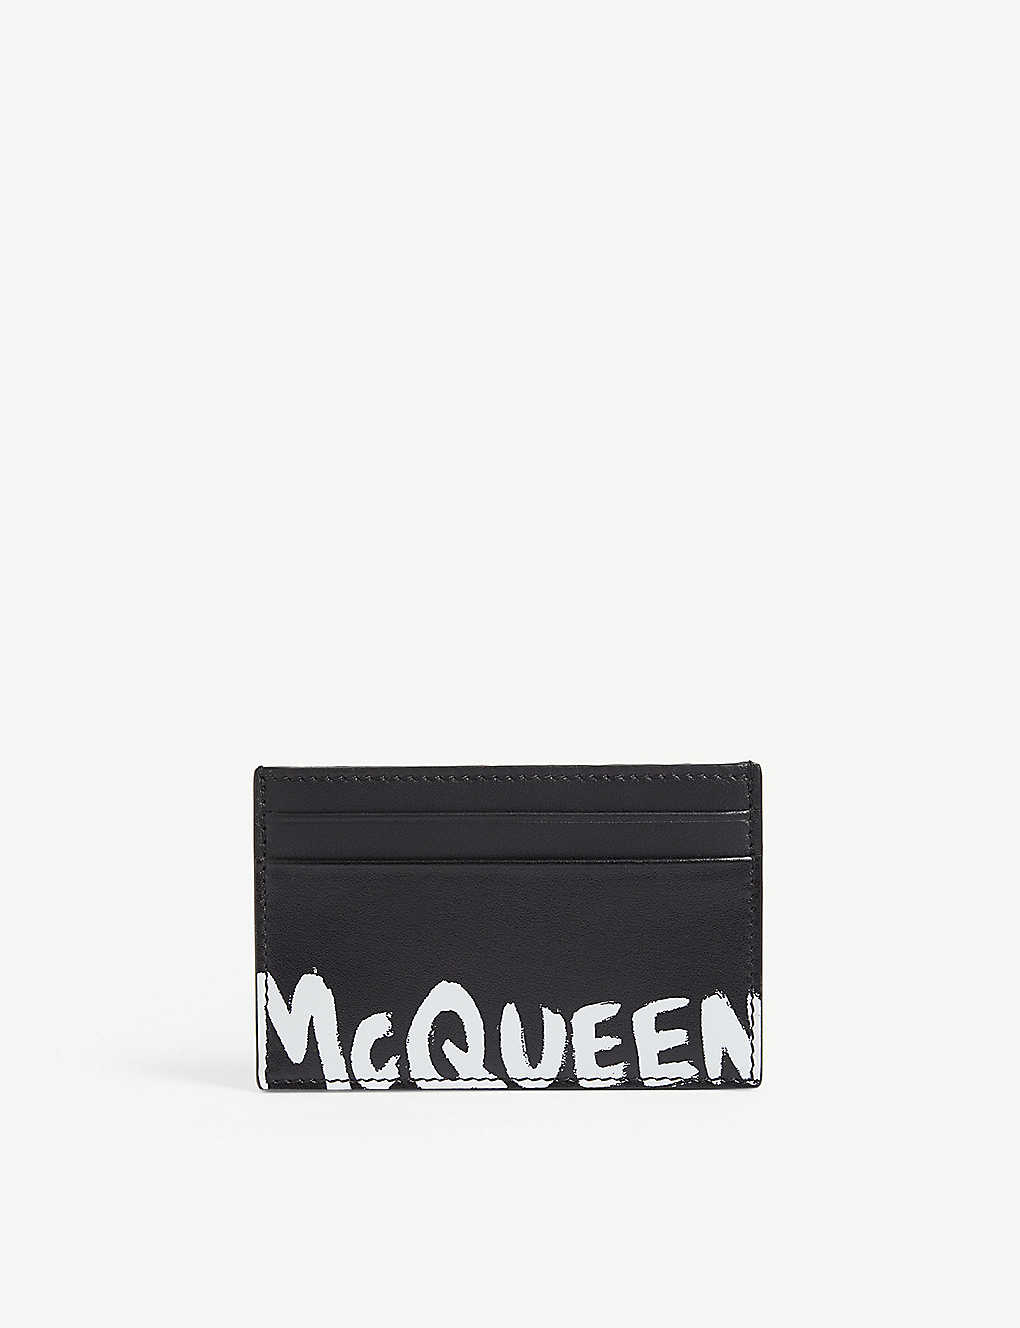 ALEXANDER MCQUEEN: Graffiti logo leather card holder